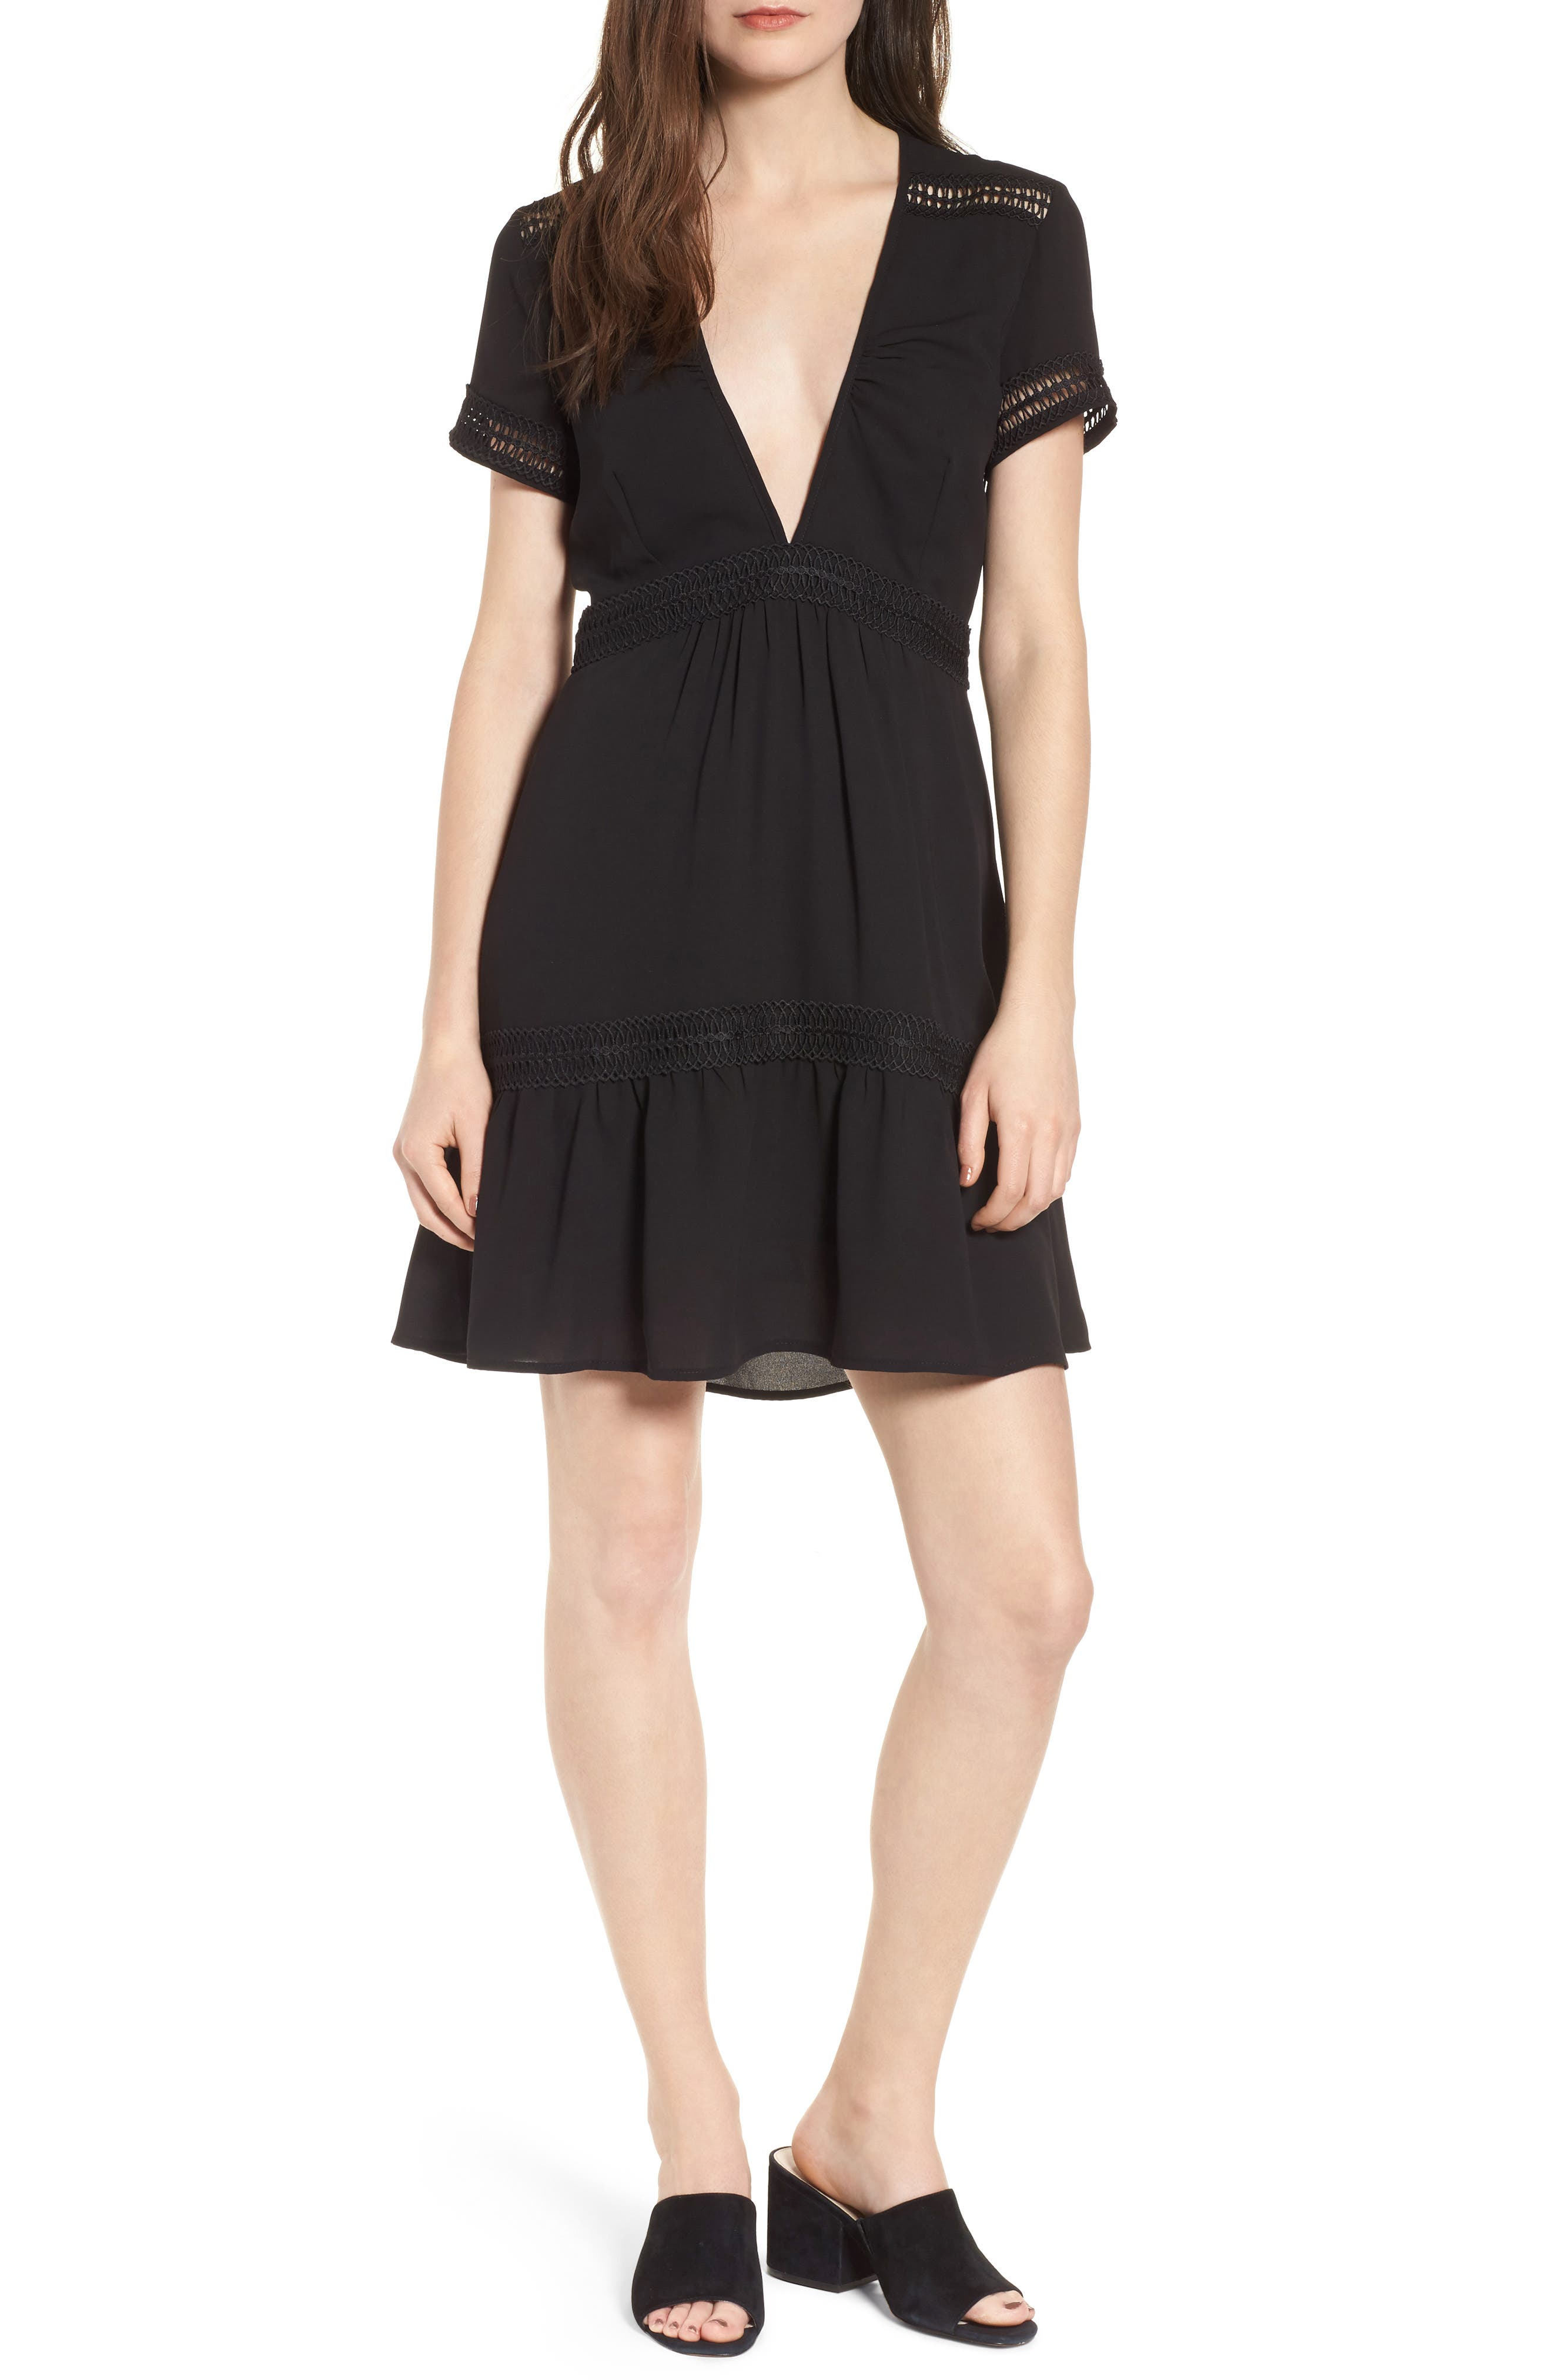 Take Hold Tiered Dress,                         Main,                         color, 001